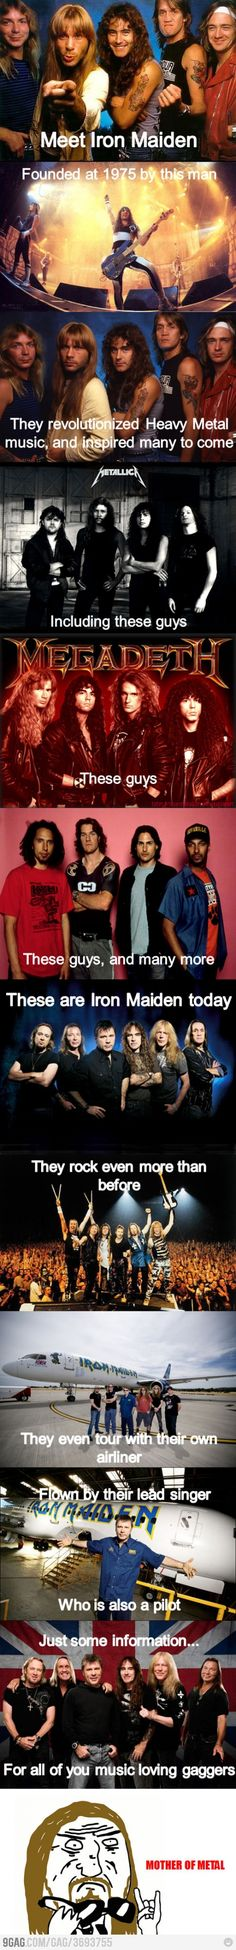 Just Iron Maiden